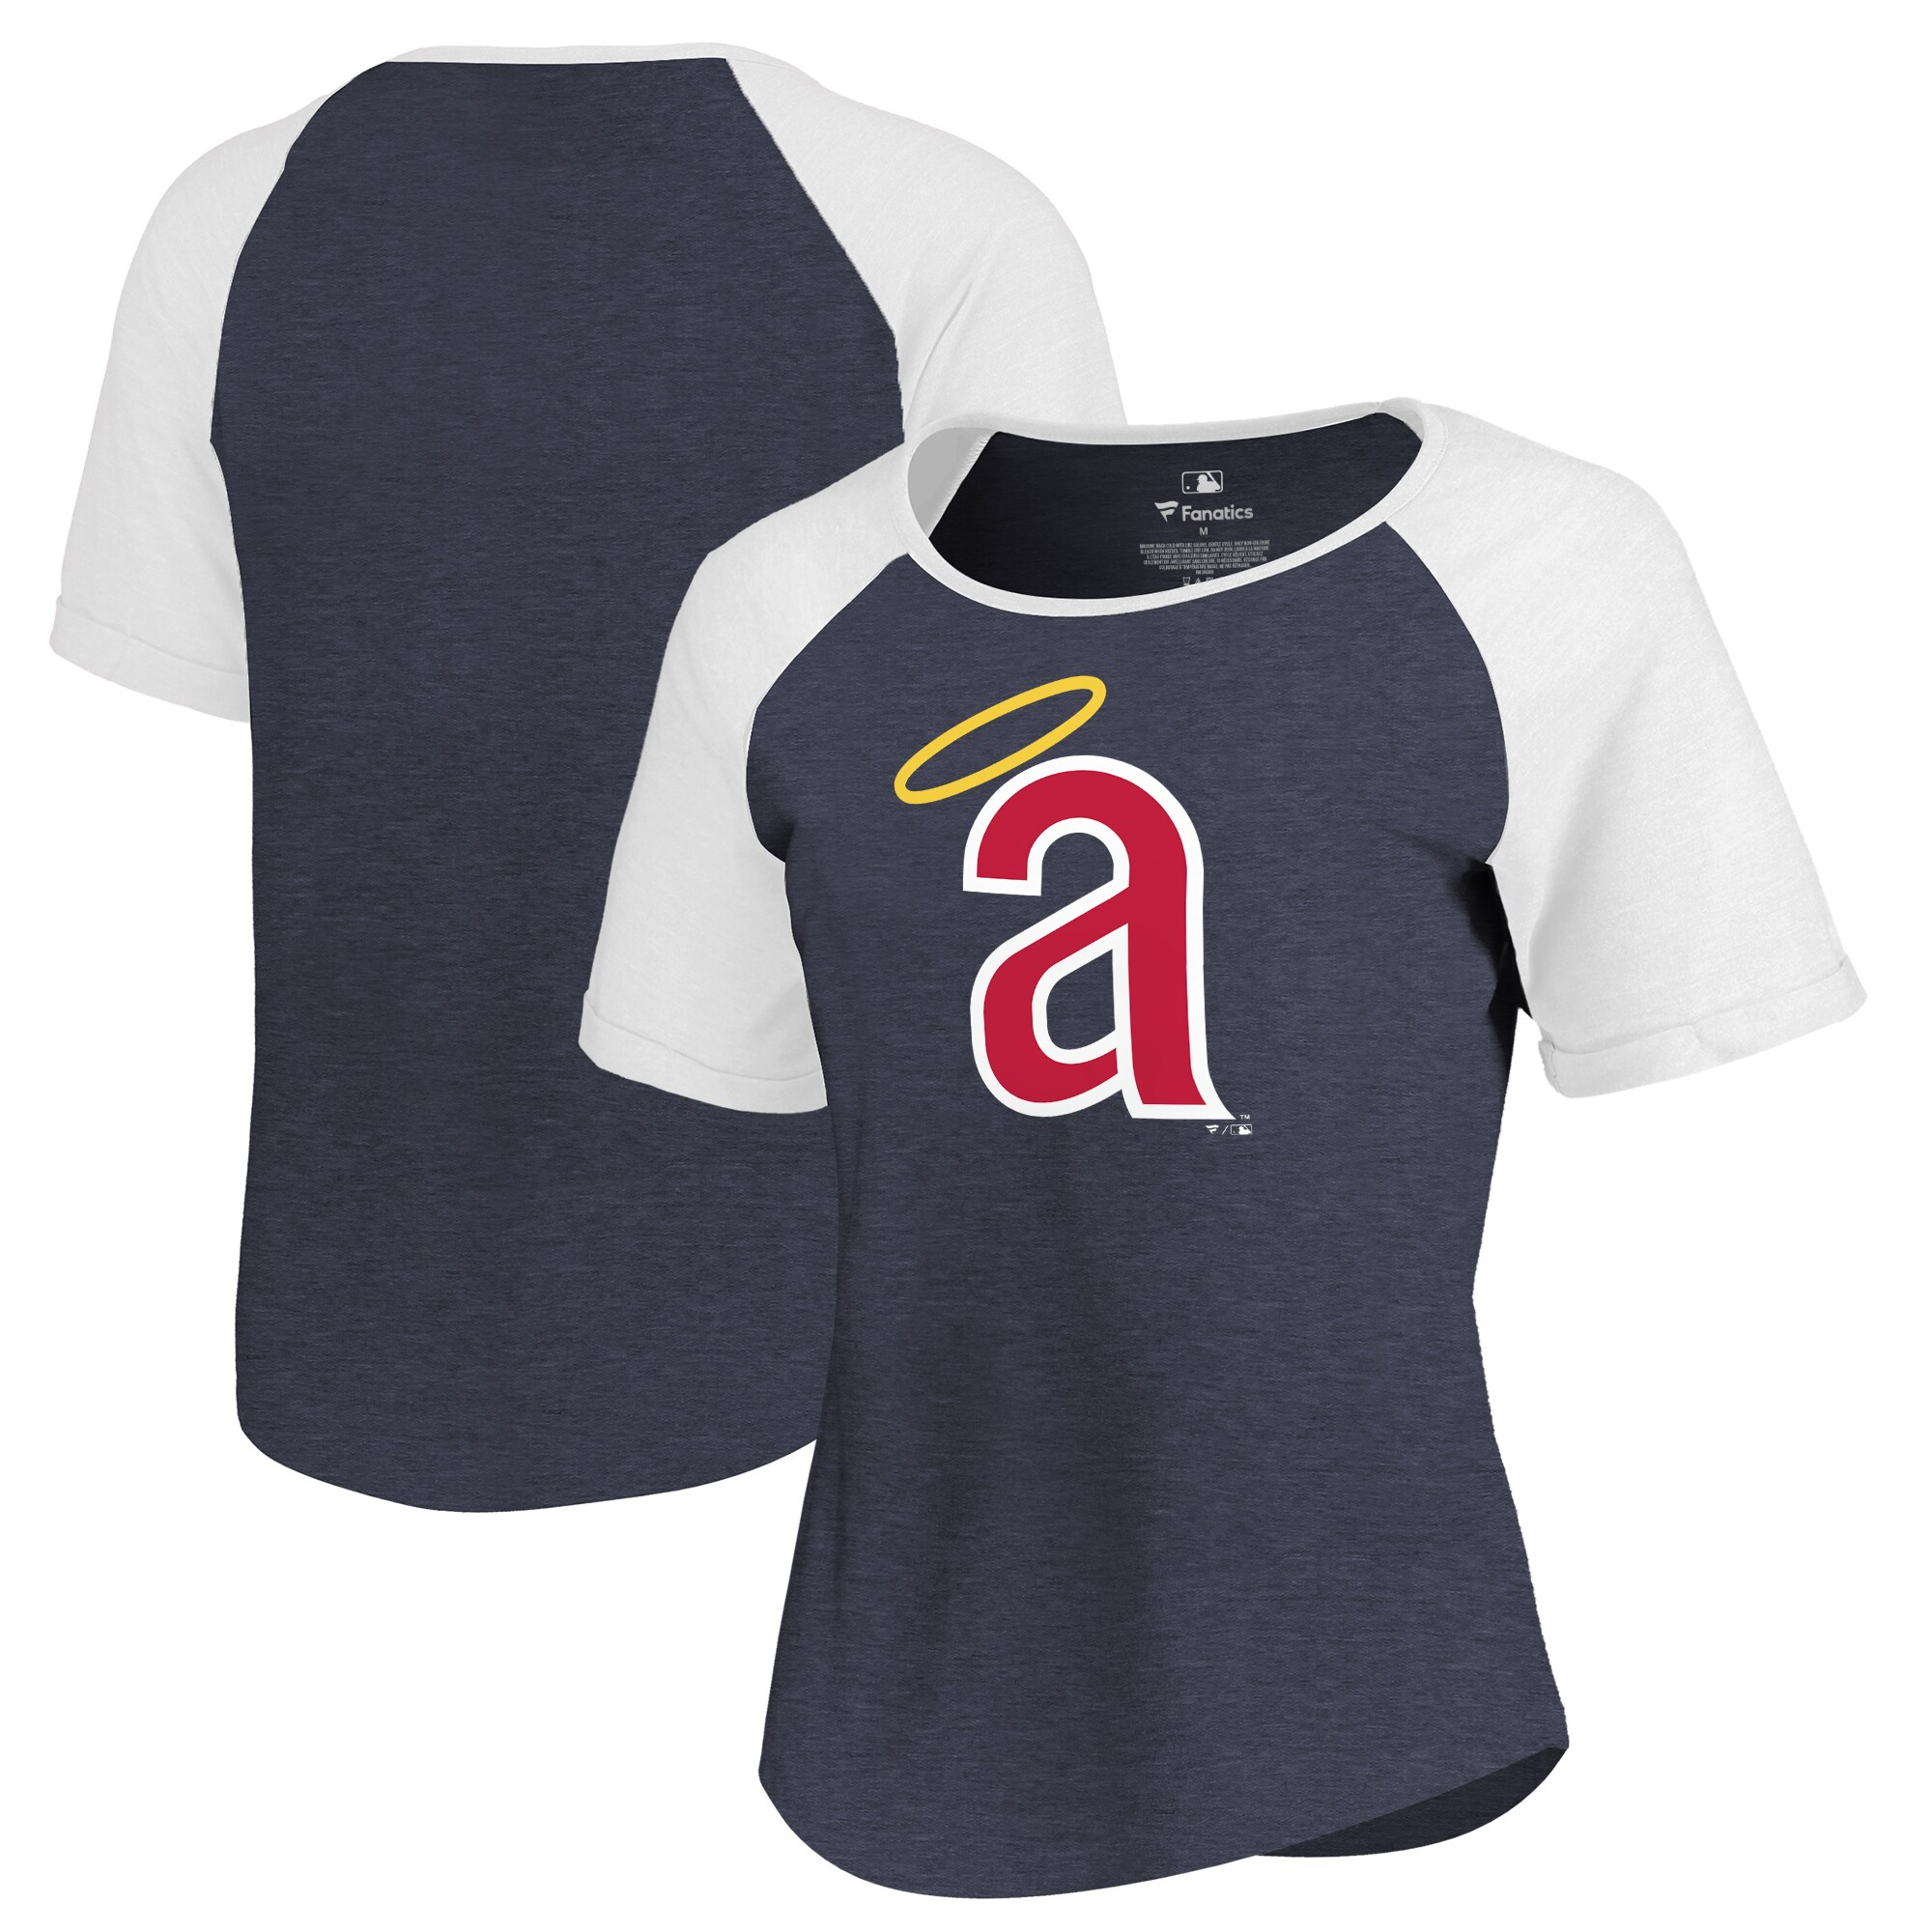 Los Angeles Angels Fanatics Branded Women's Huntington Cooperstown Collection Tri-Blend T-Shirt - Navy